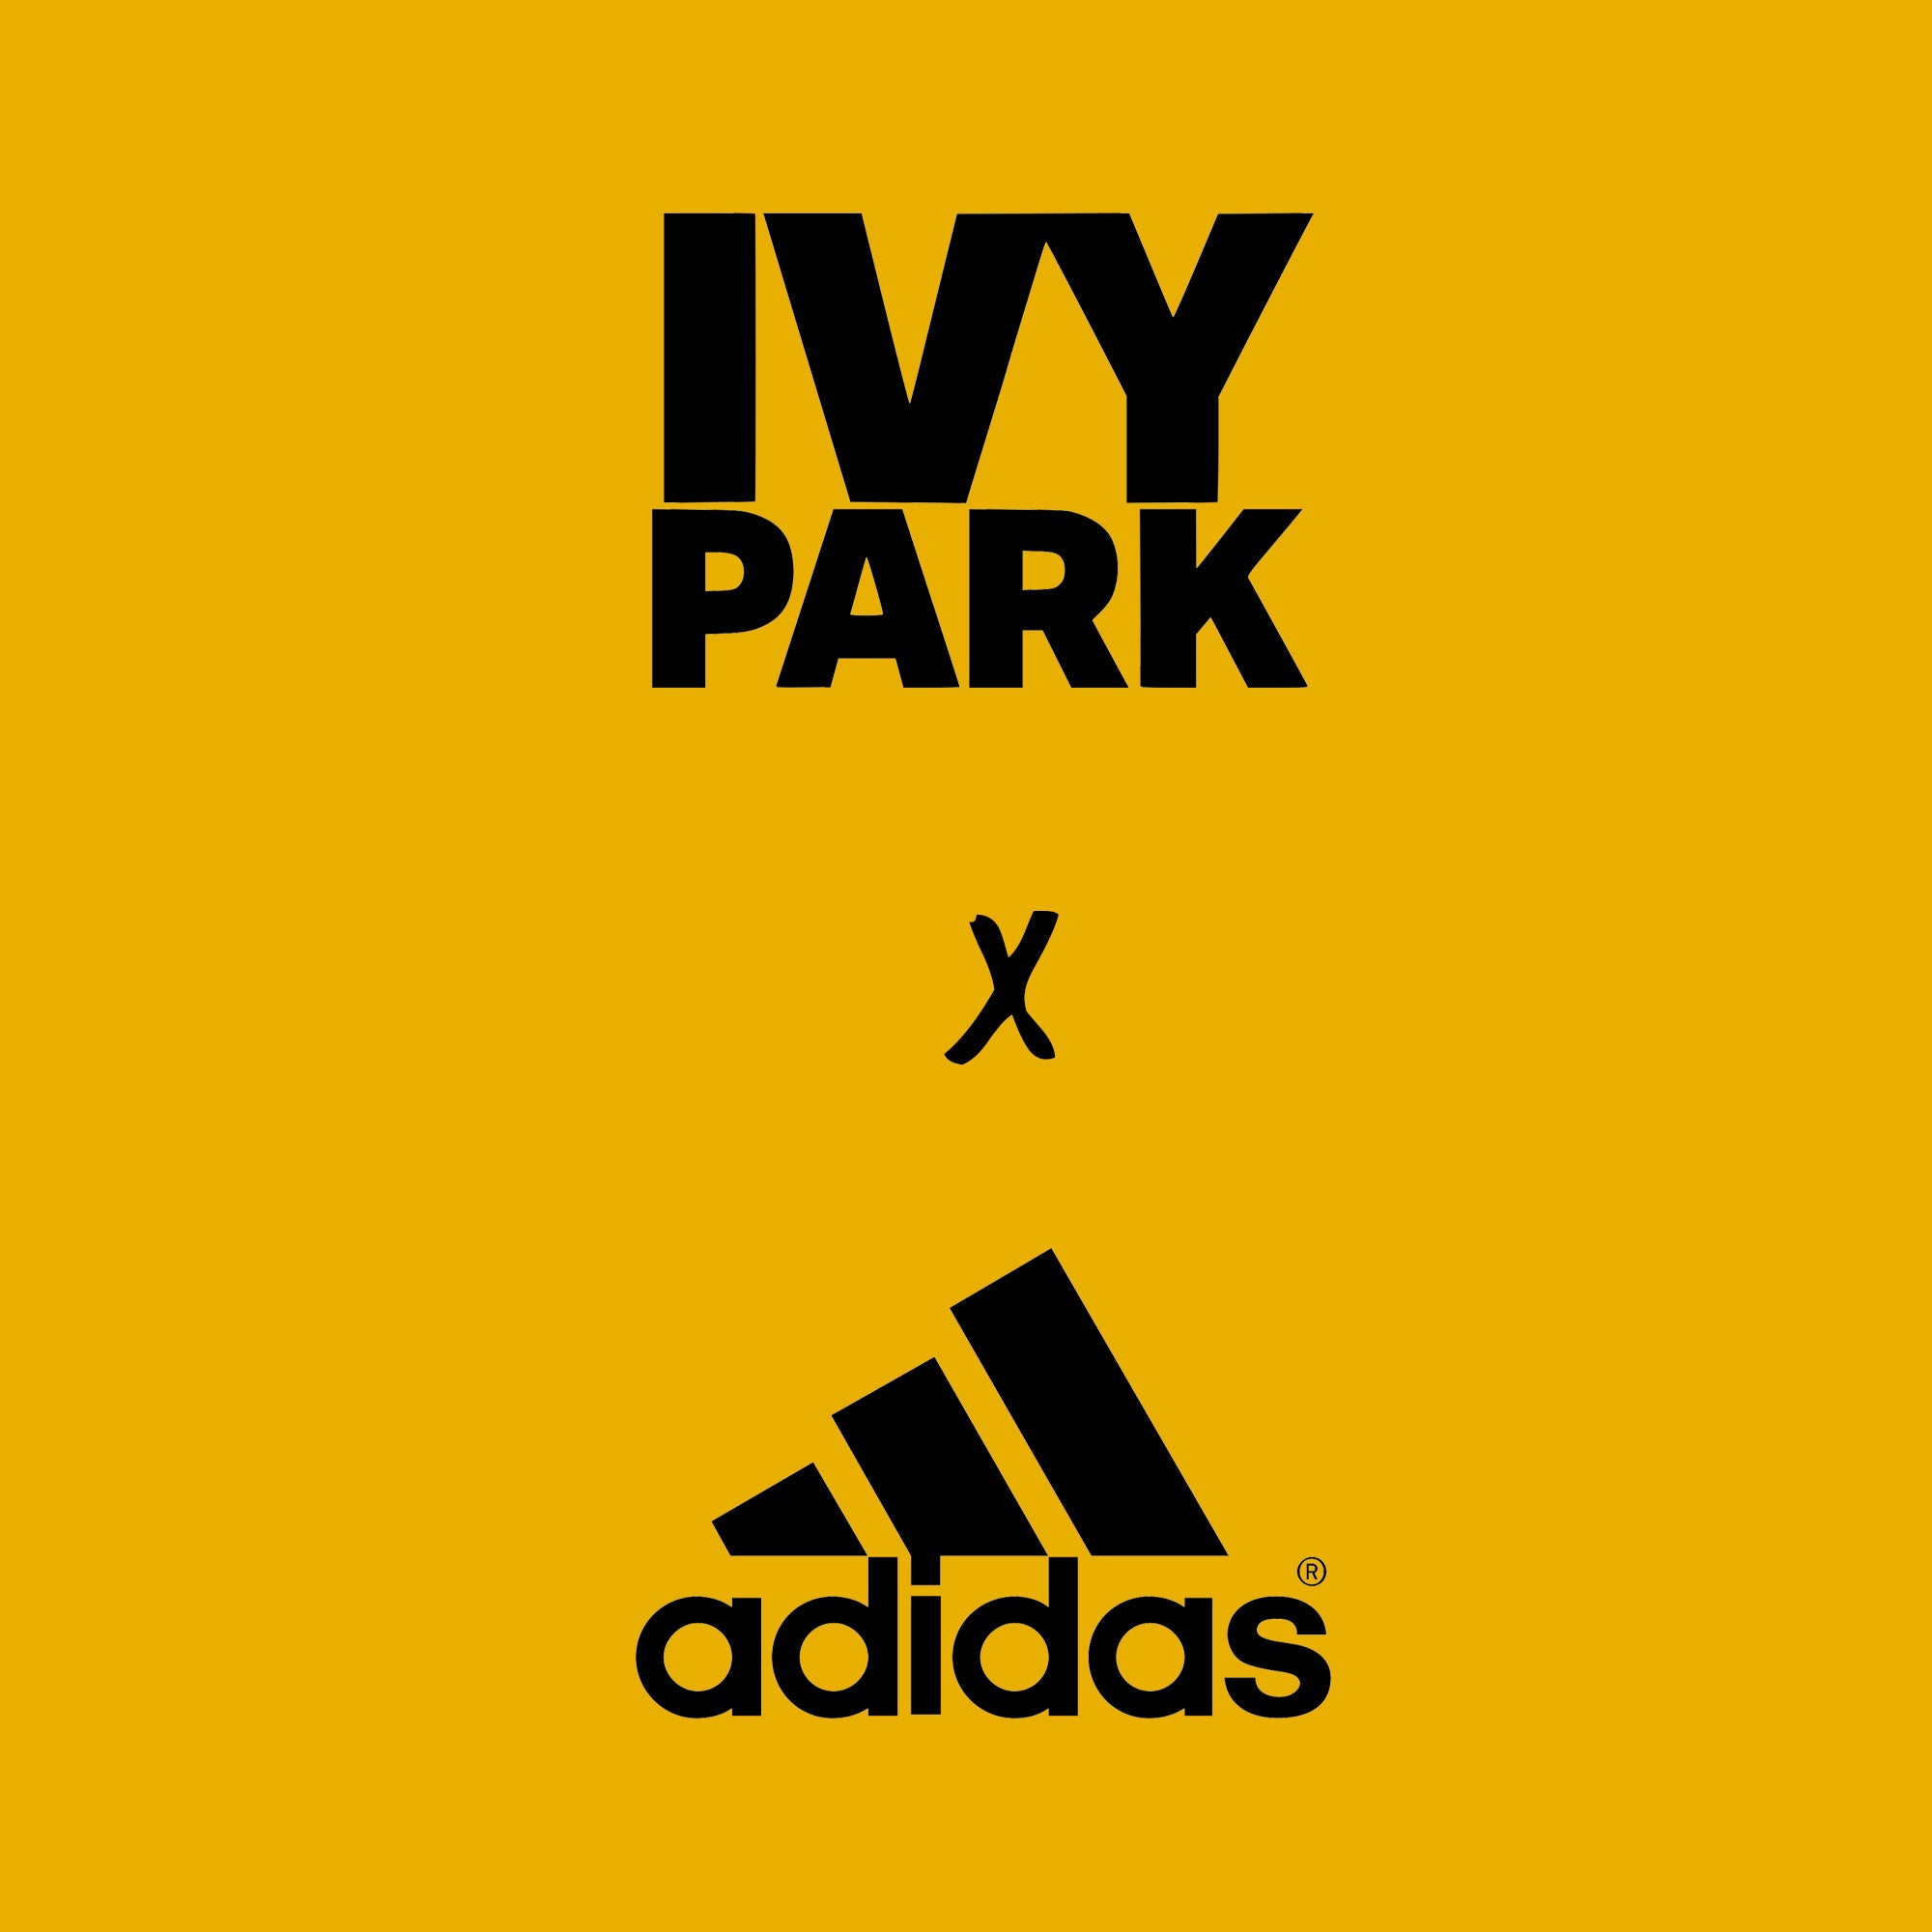 Beyoncé Relaunches IVY PARK Collection in Partnership with Adidas